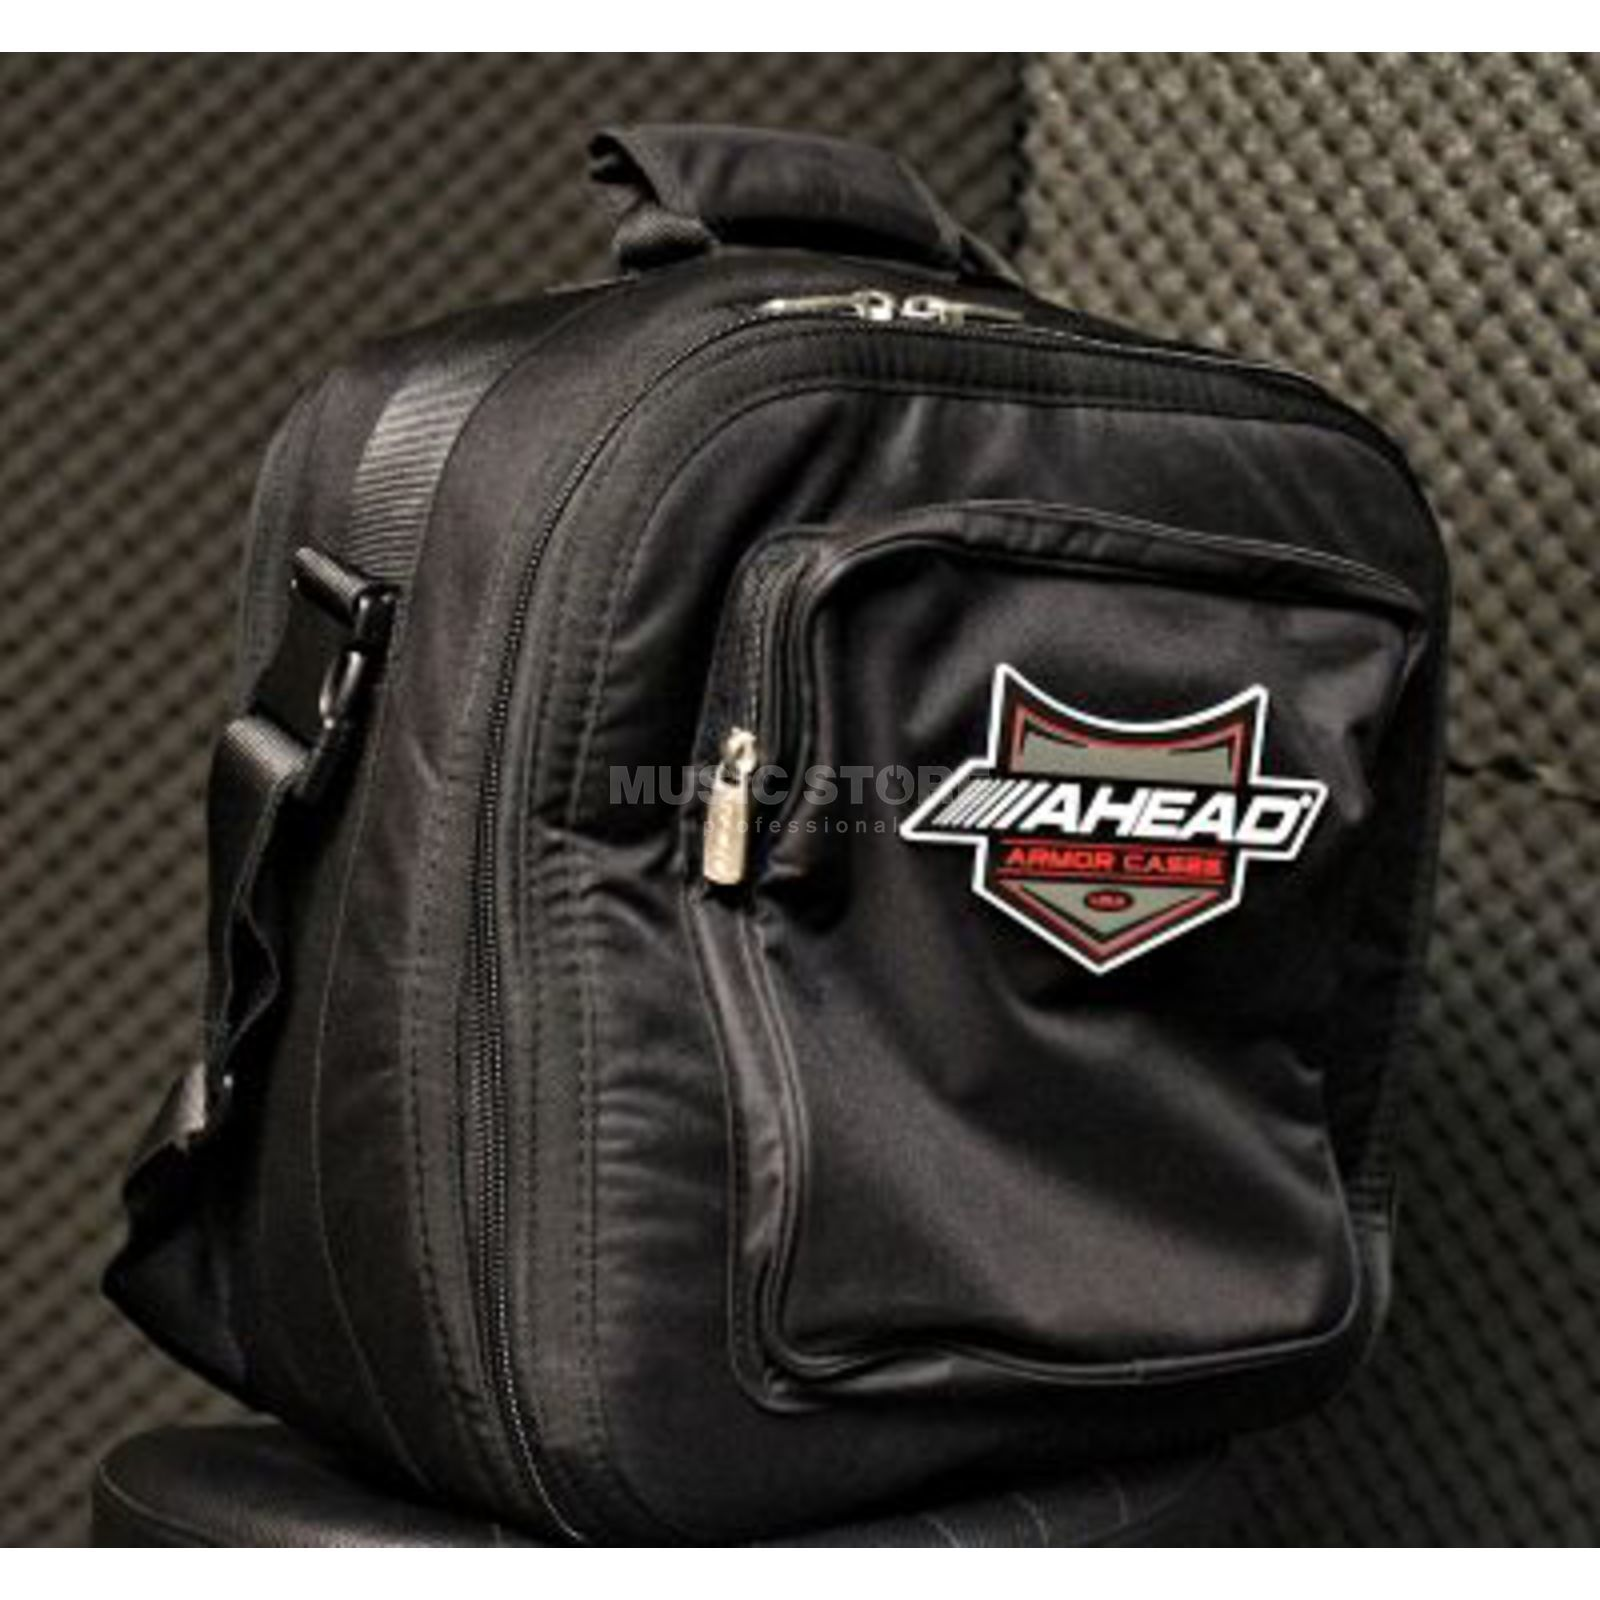 Ahead Armor Cases Doppelpedal Bag  Produktbild